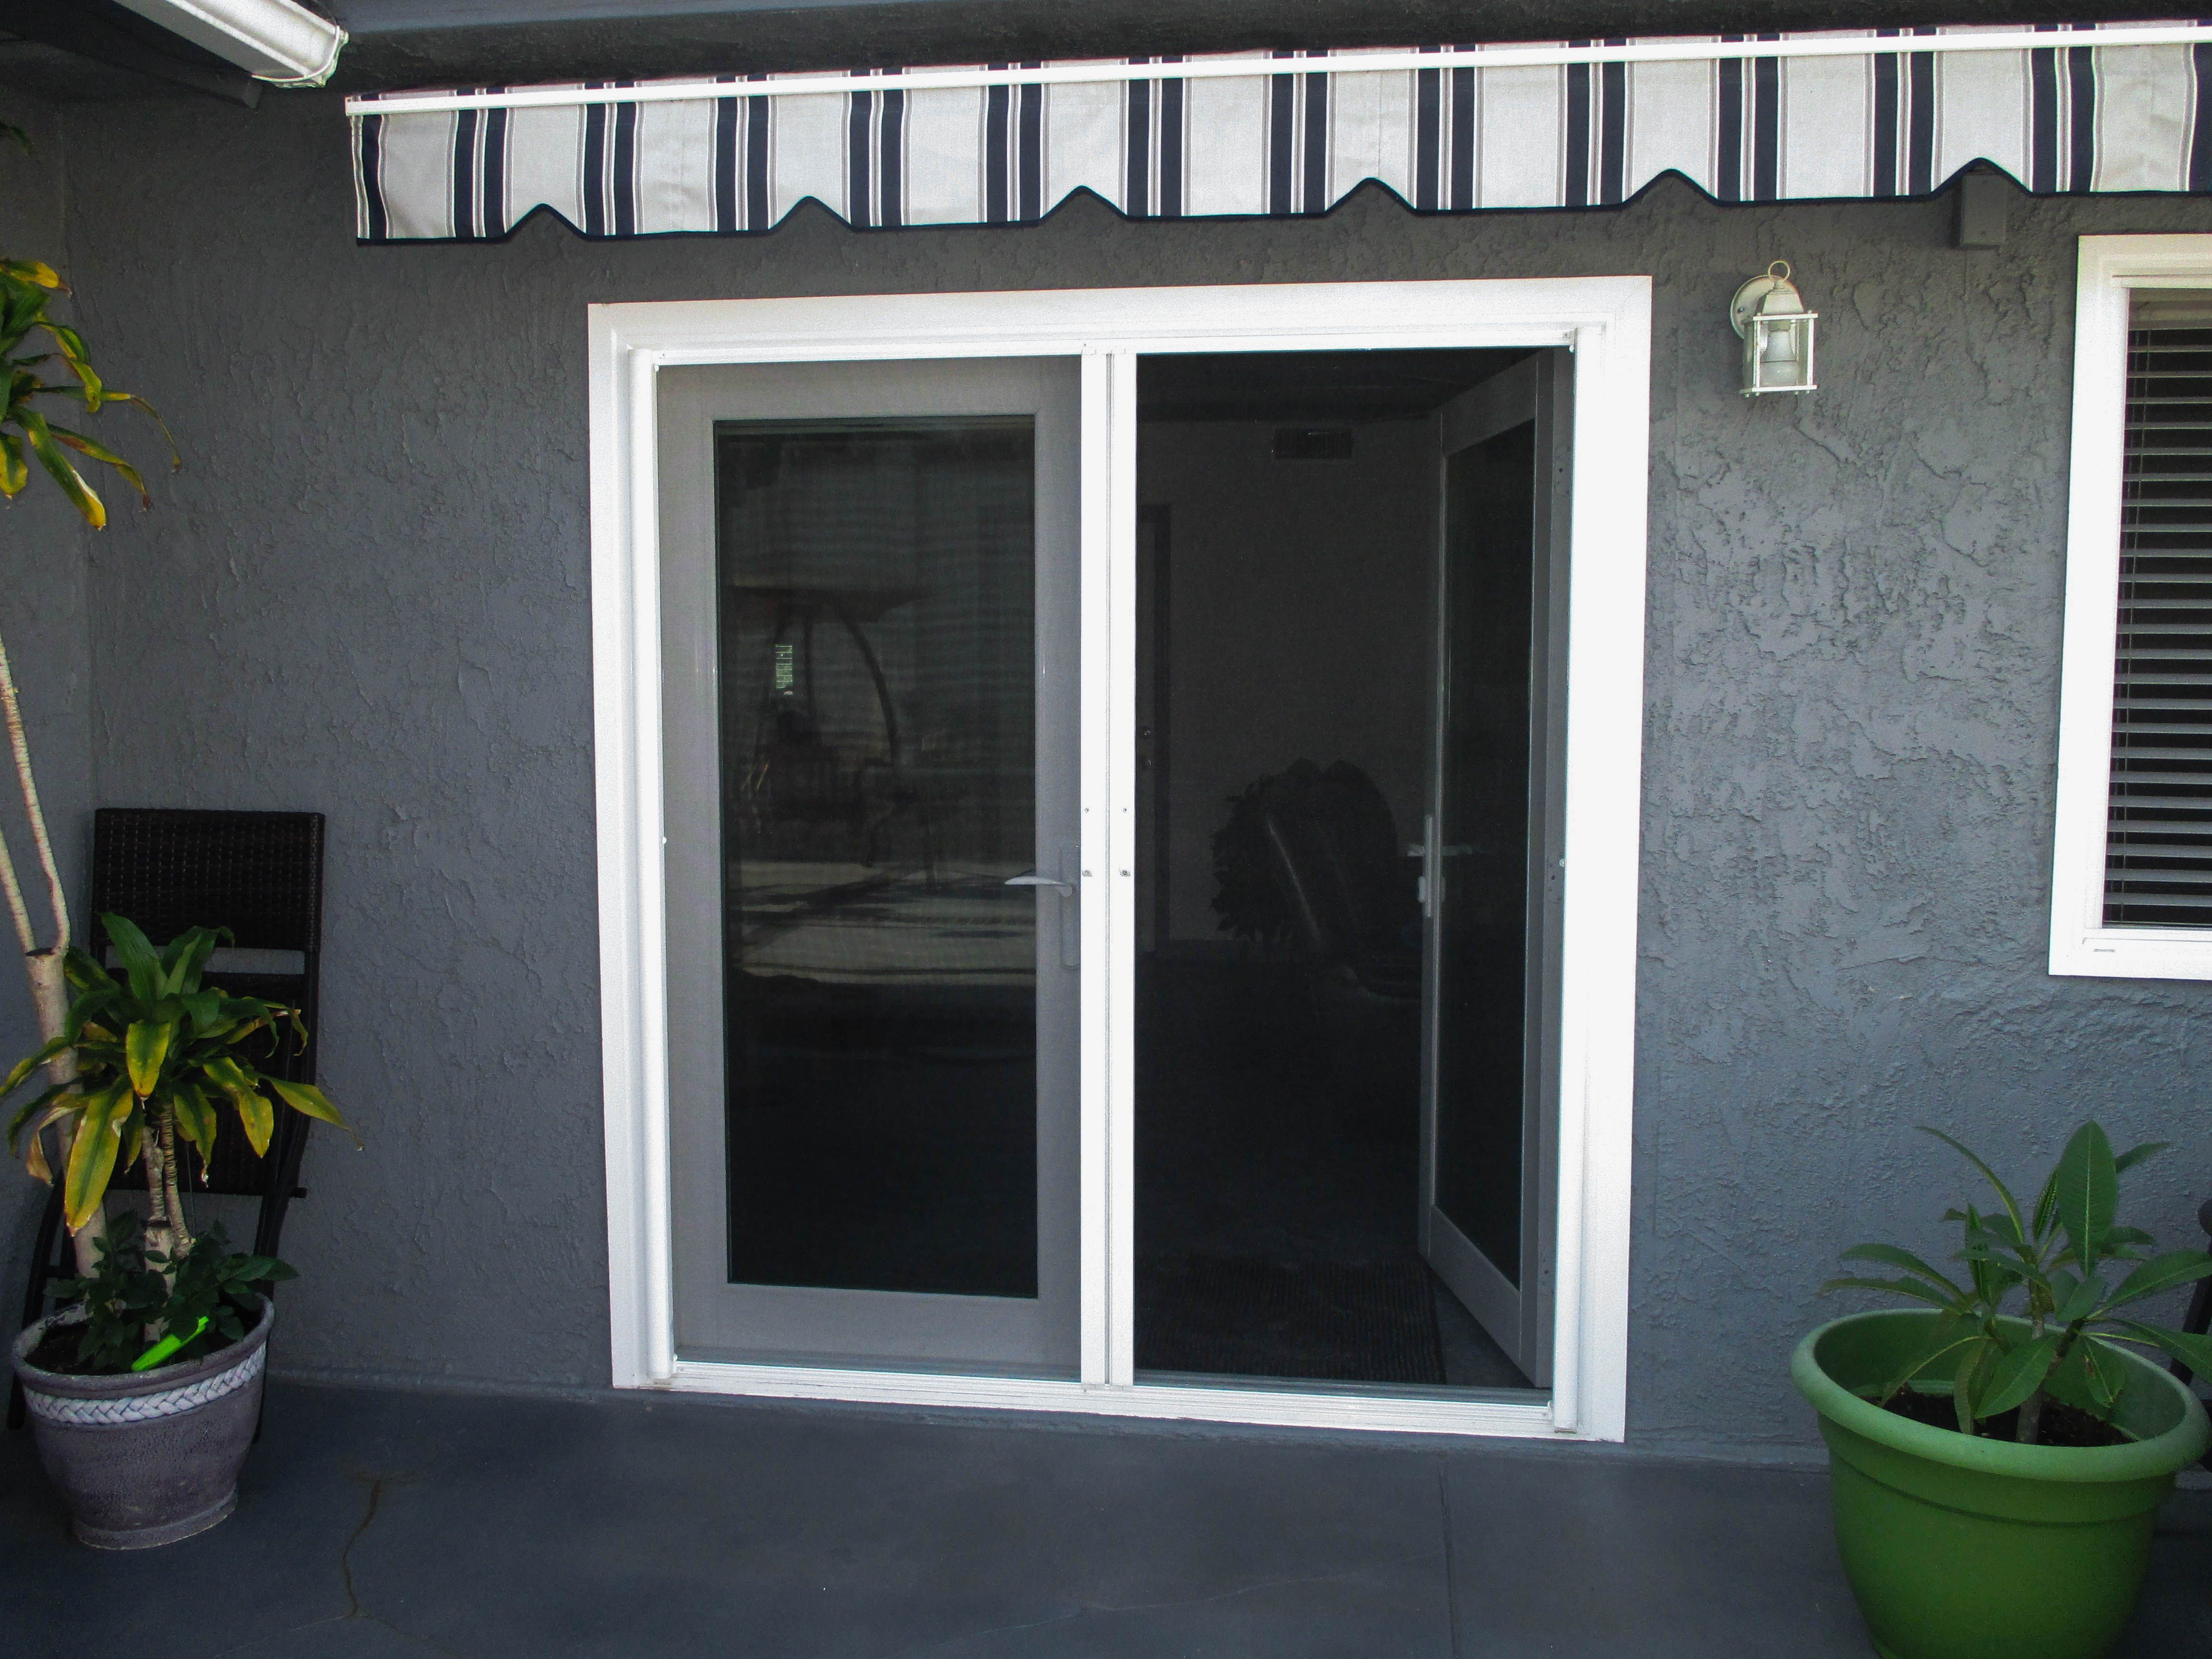 We Love The Striped Awning And White Framed French Doors Against The Charcoal Gray House We Were Ab Beautiful French Doors Retractable Screen Door Grey Houses